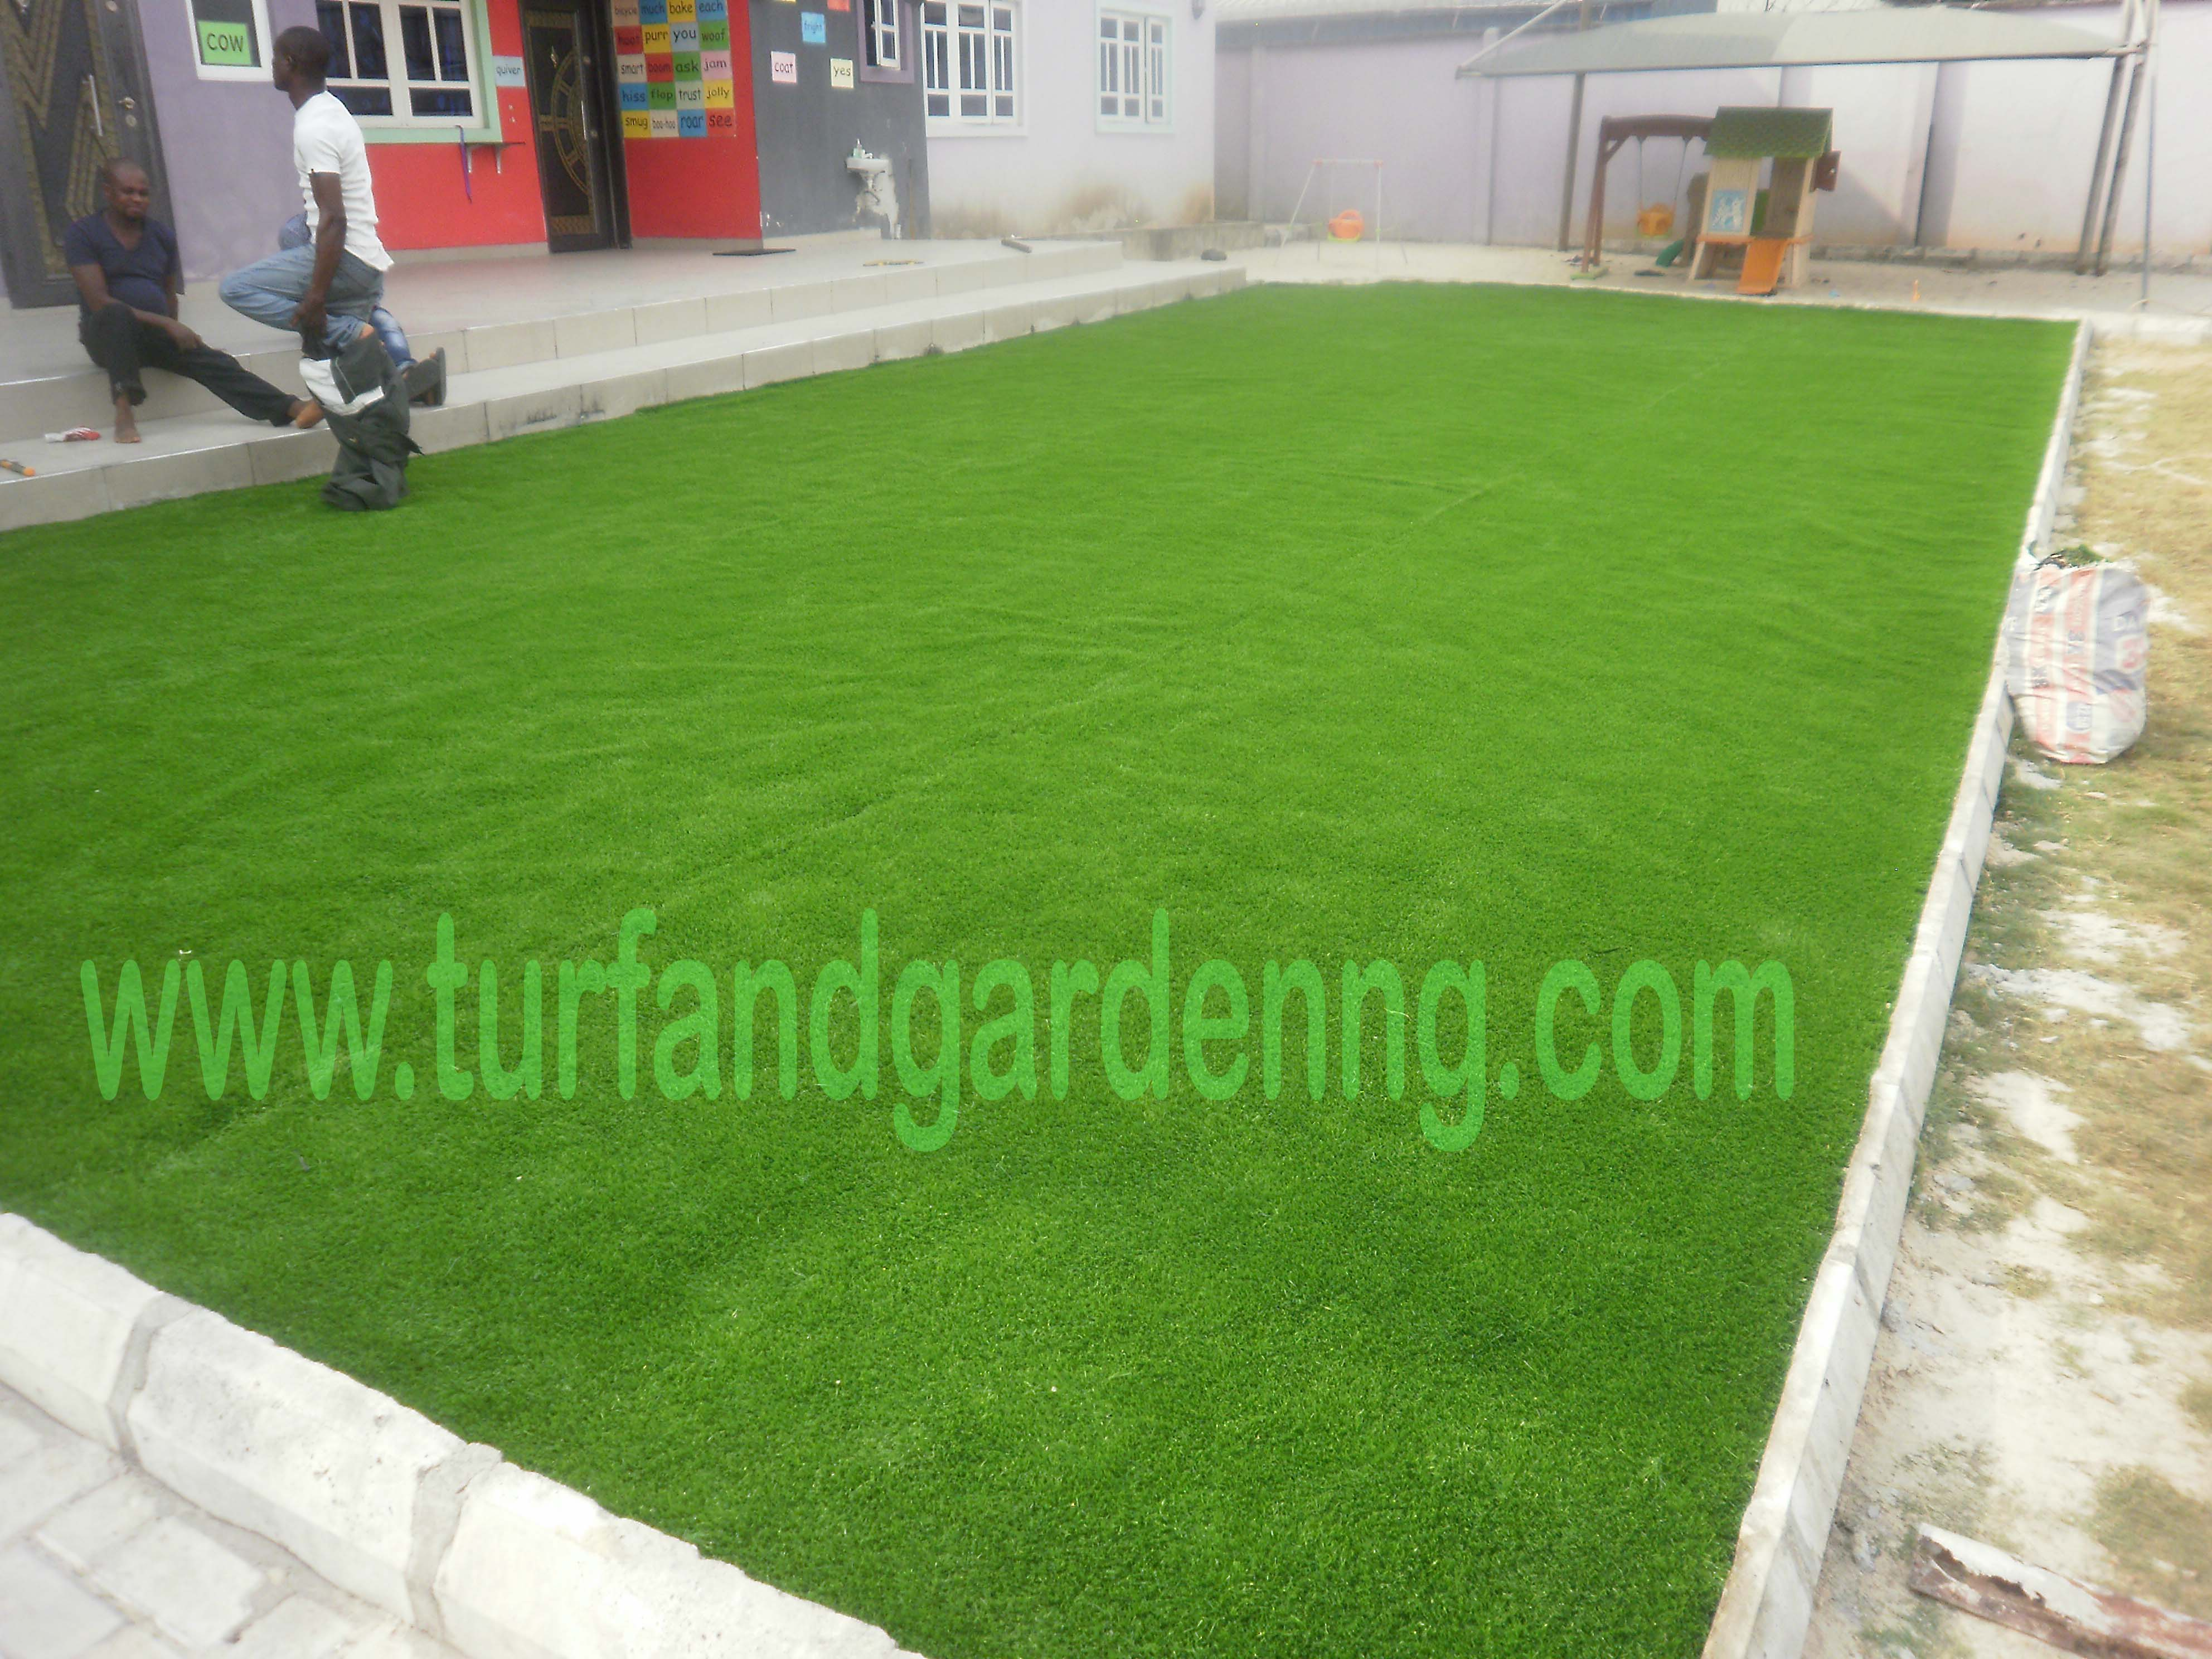 Play Academy Schools - Trans Amadi Gardens - Completed view